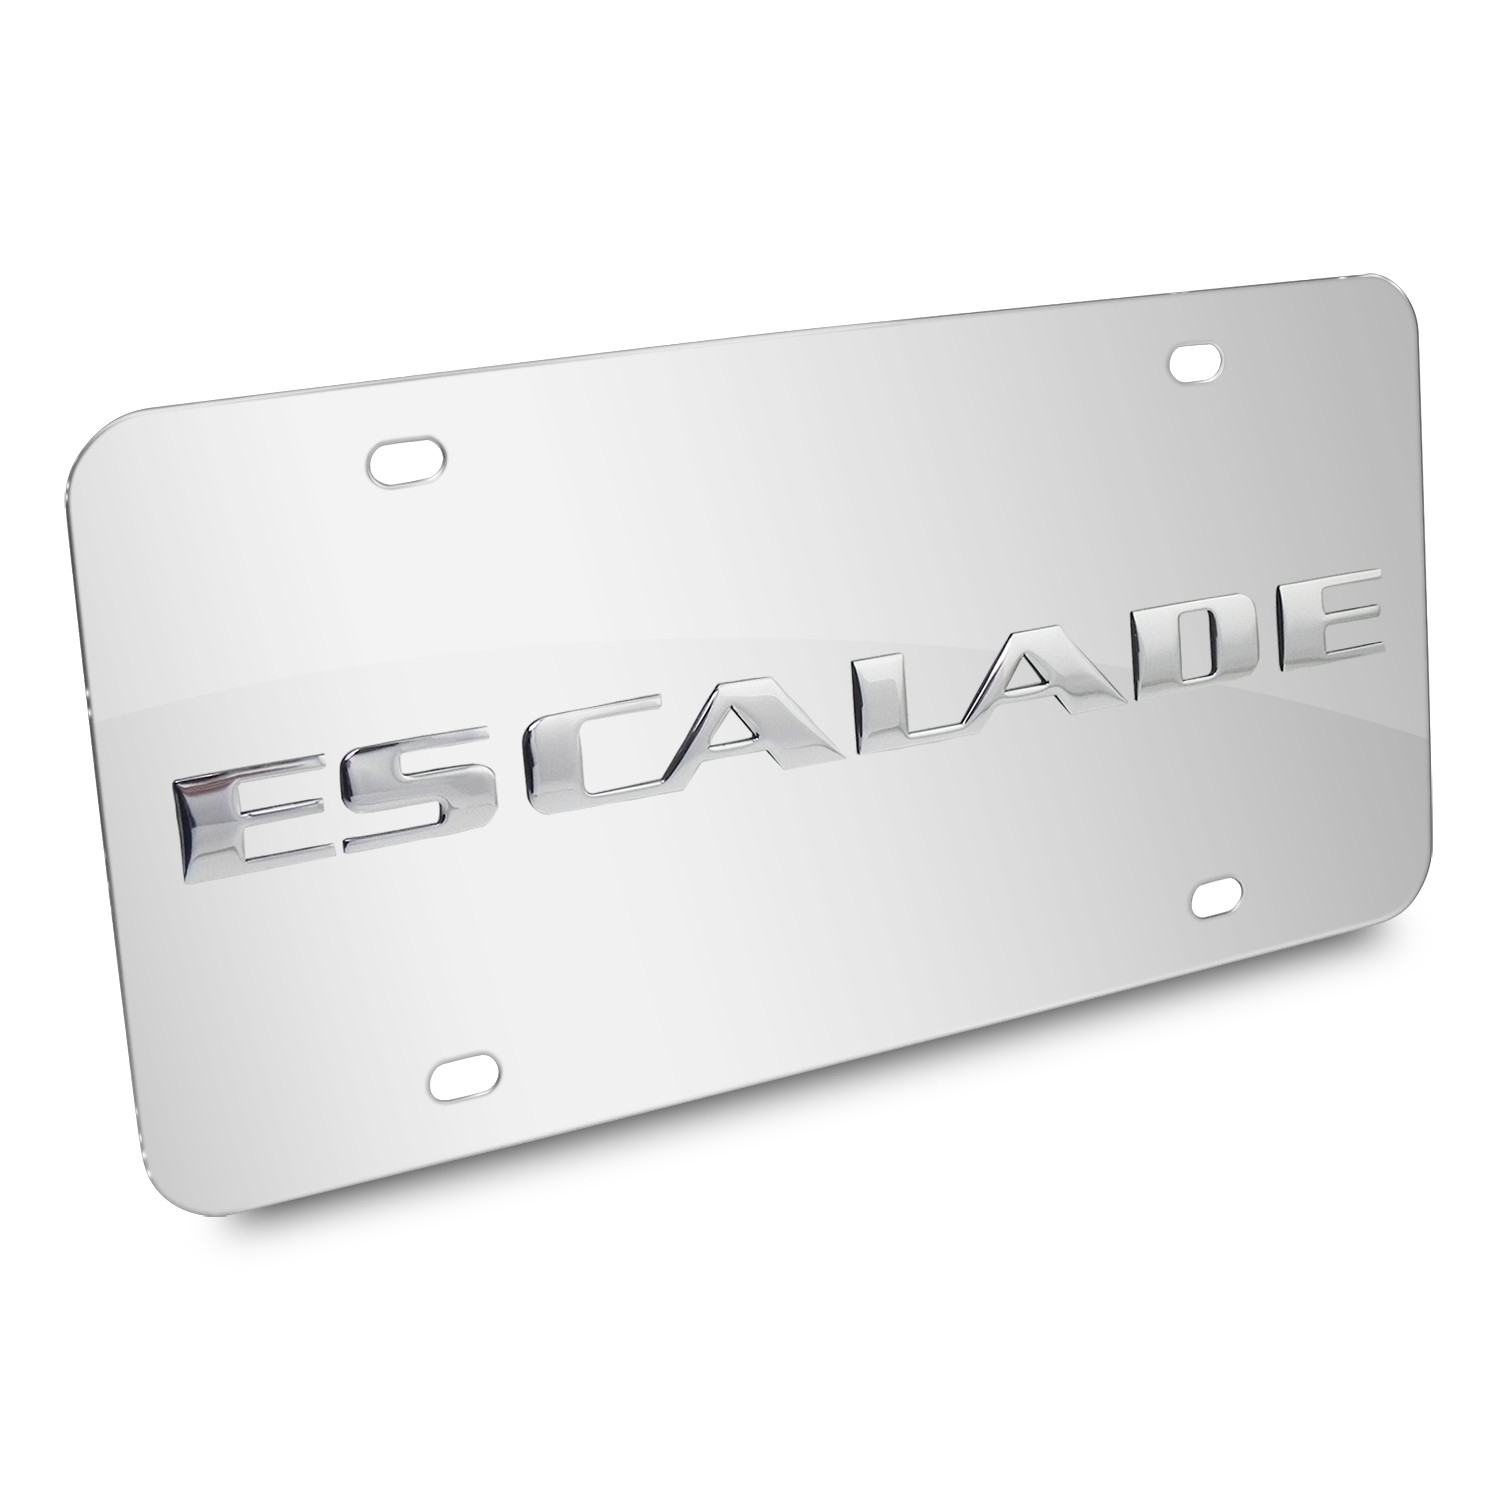 Cadillac Eacalade Name 3D Logo Chrome Stainless Steel License Plate